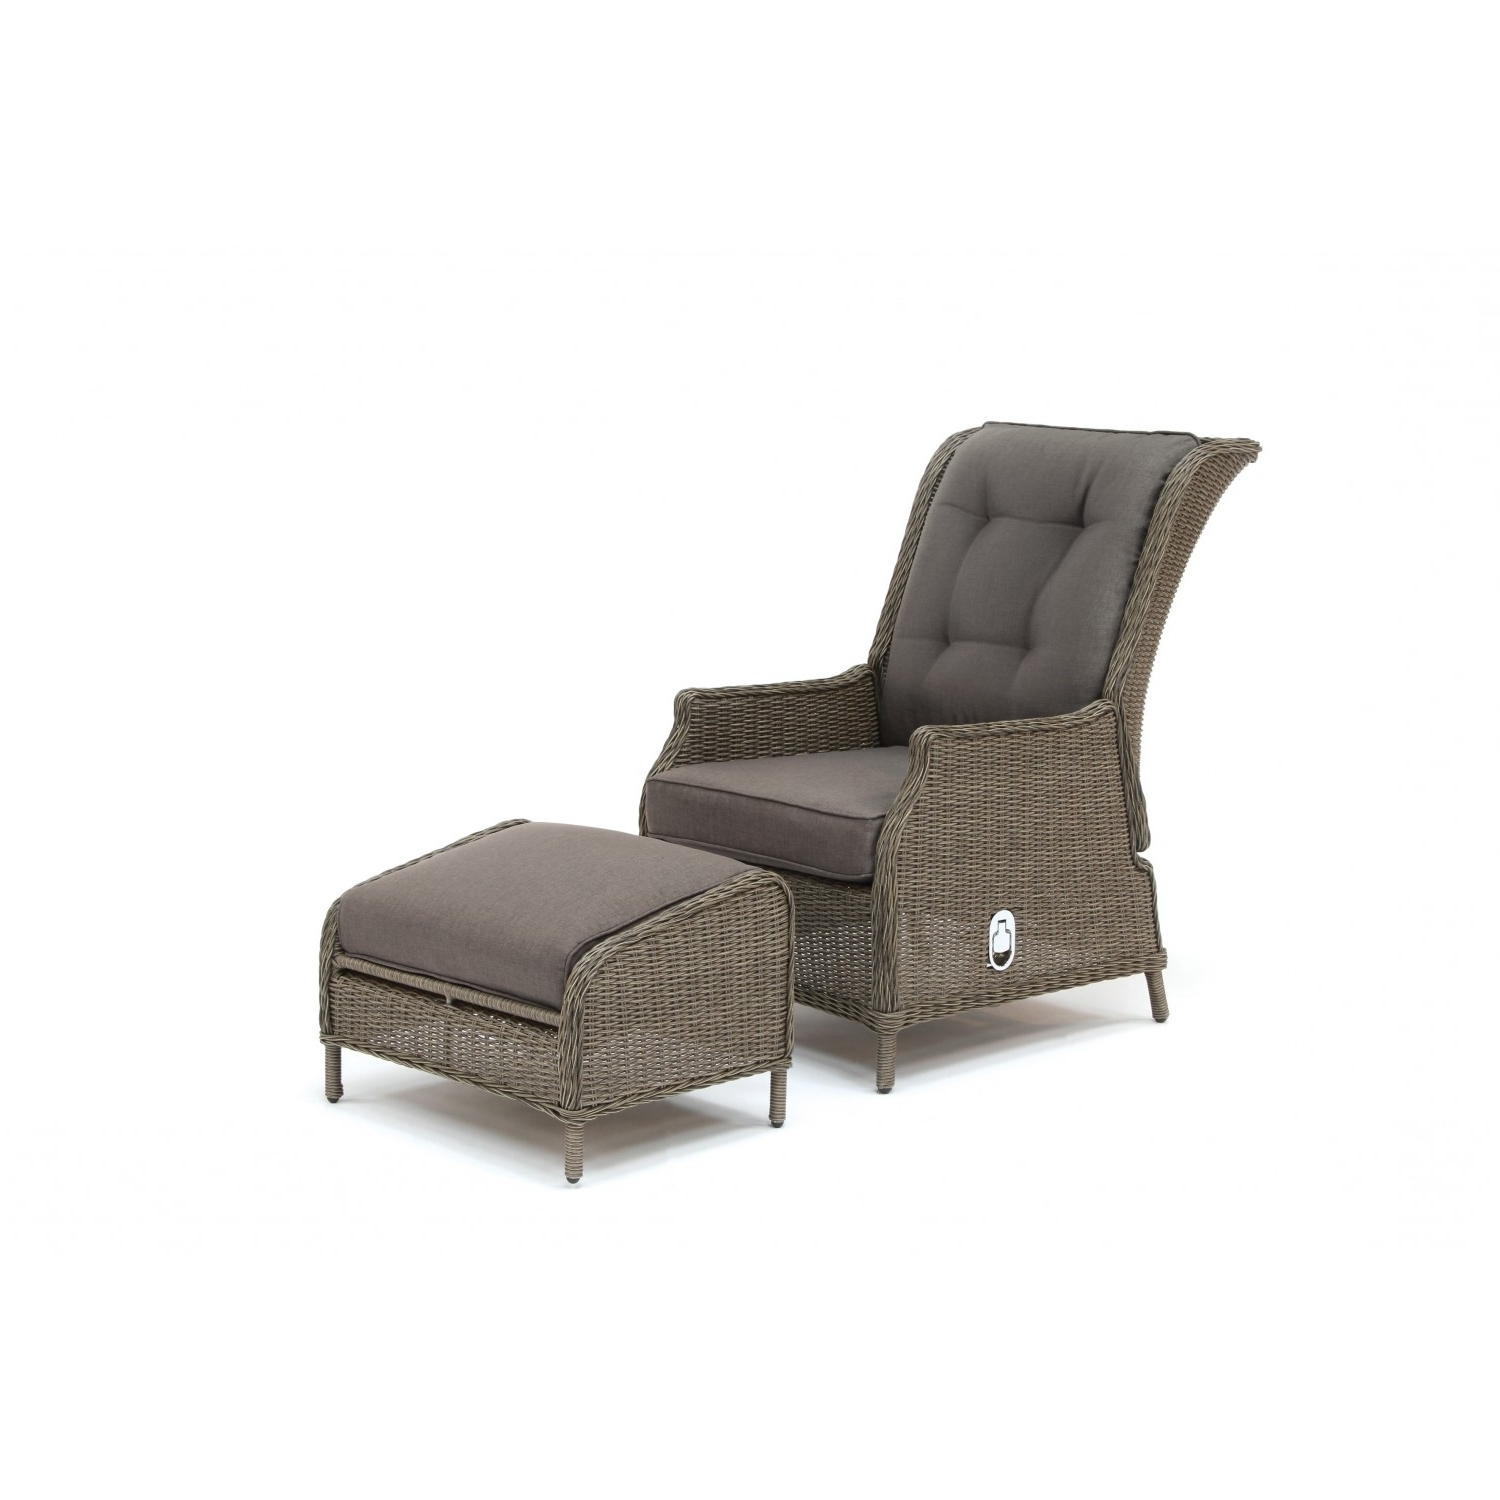 Kettler Chaise Lounge Chairs Throughout Popular Kettler Jarvis Recliner With Footstool – Rattan Inc Taupe Cushions (View 6 of 15)